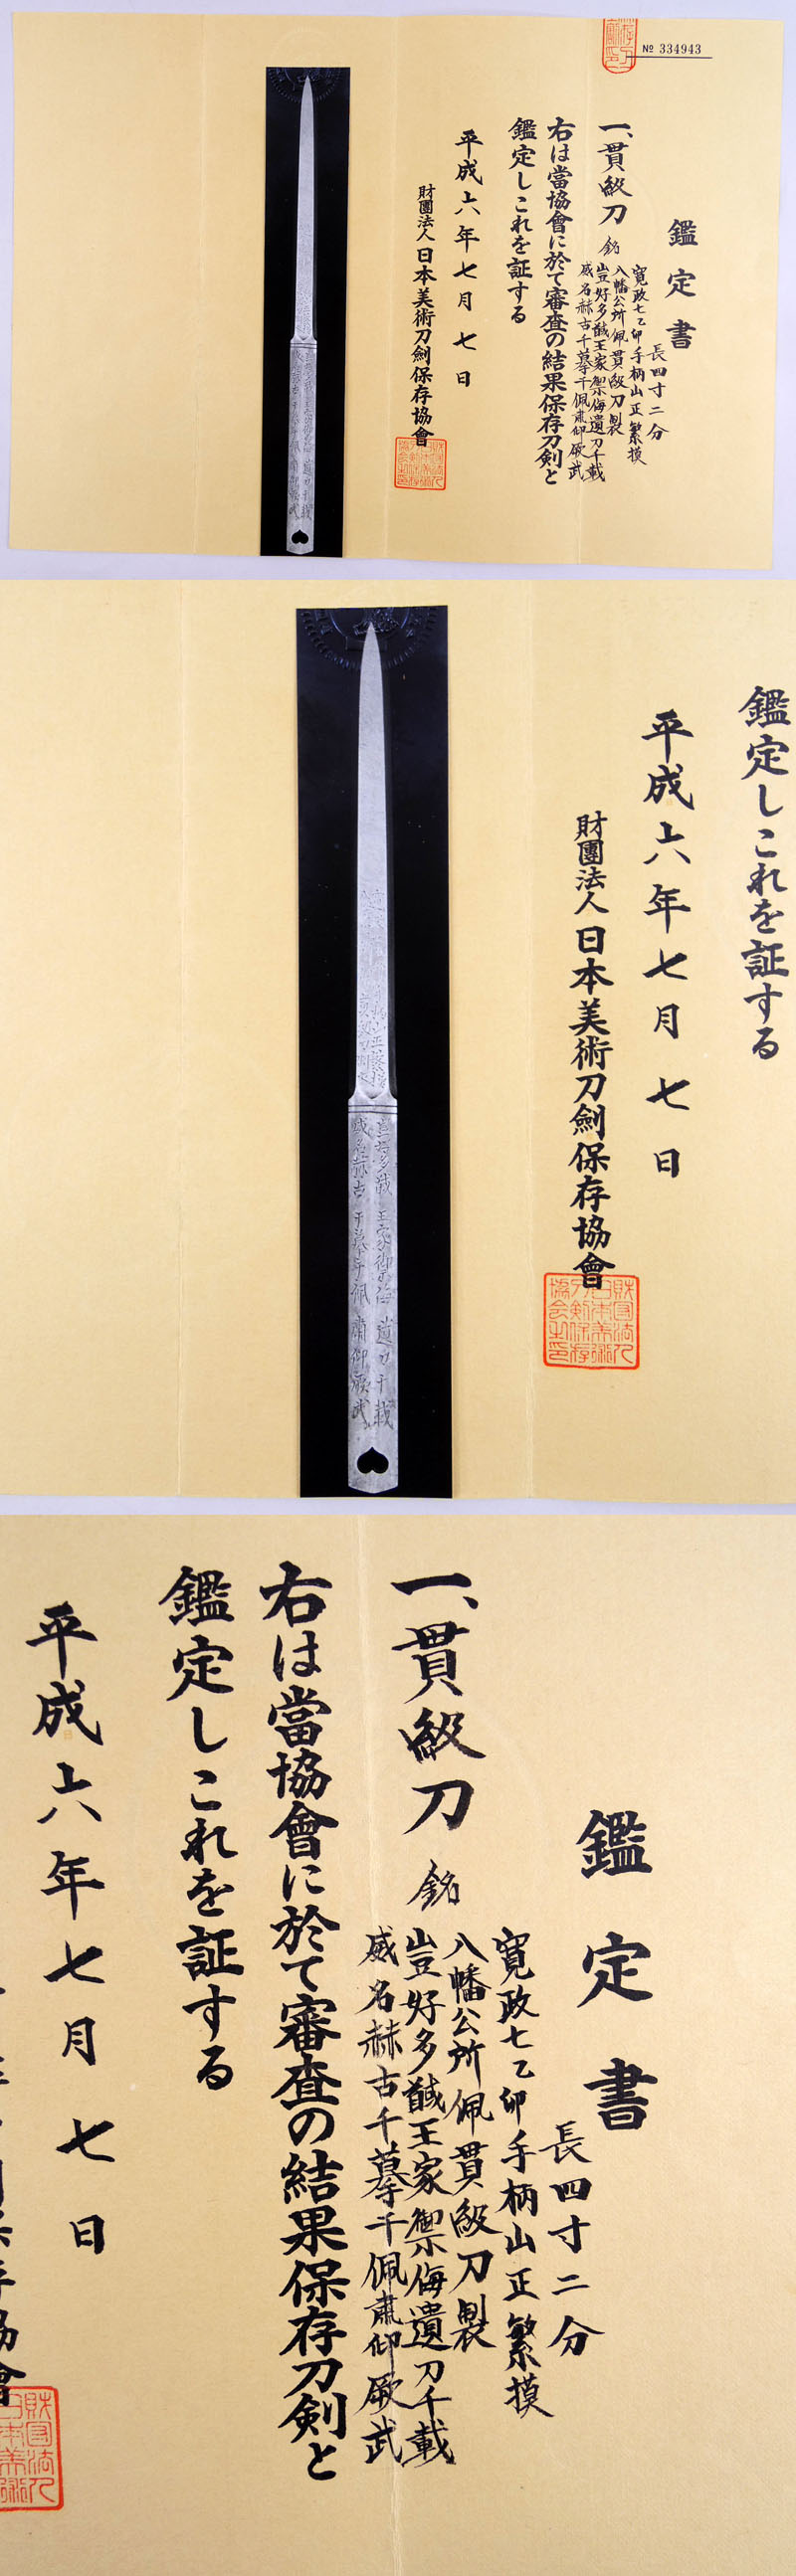 貫級刀 (馬針) Picture of Certificate